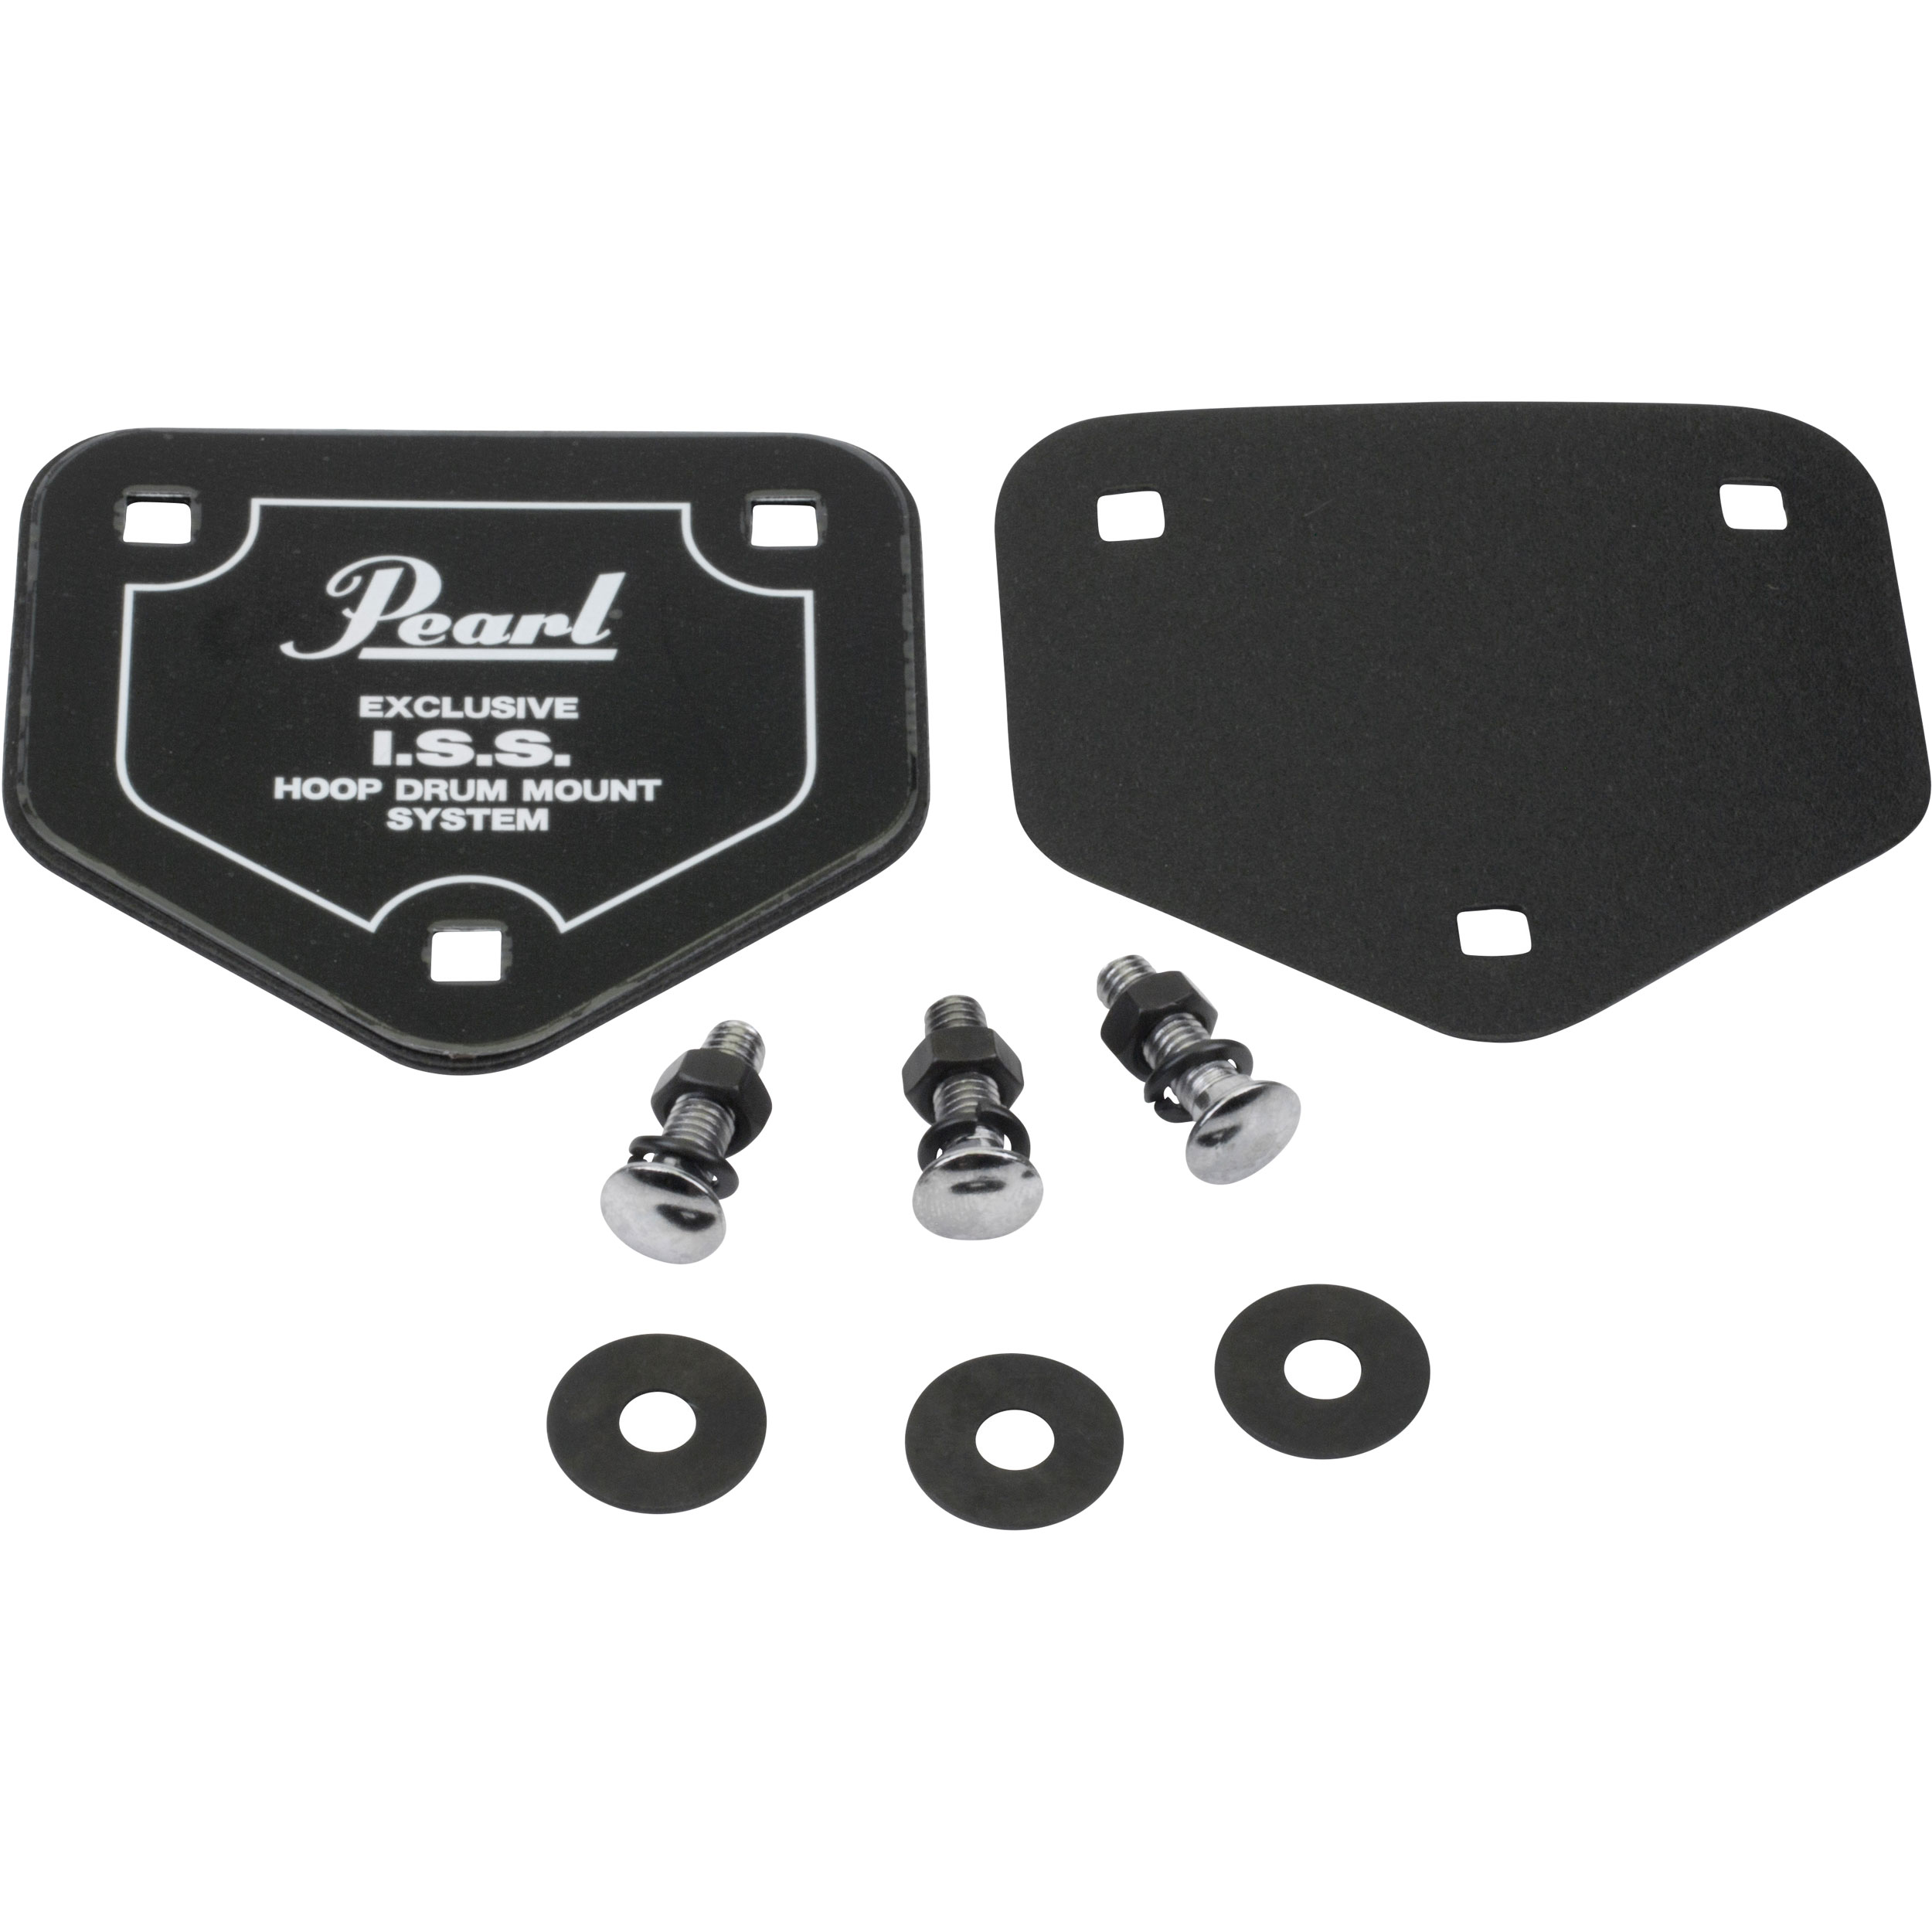 Pearl Masking Plate for BT3